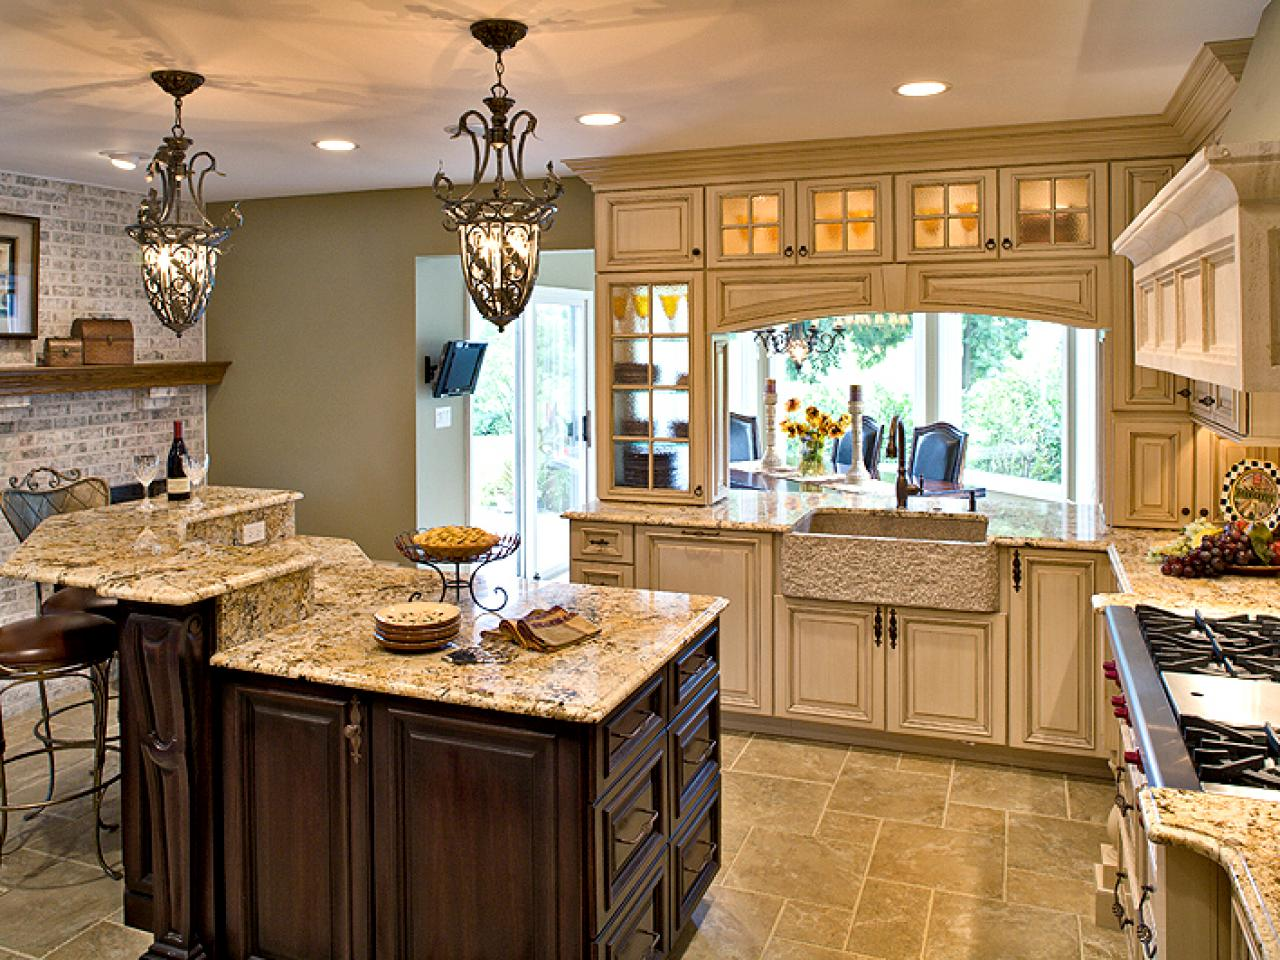 Undercounter Kitchen Lighting Under Cabinet Kitchen Lighting Pictures Ideas From Hgtv Hgtv